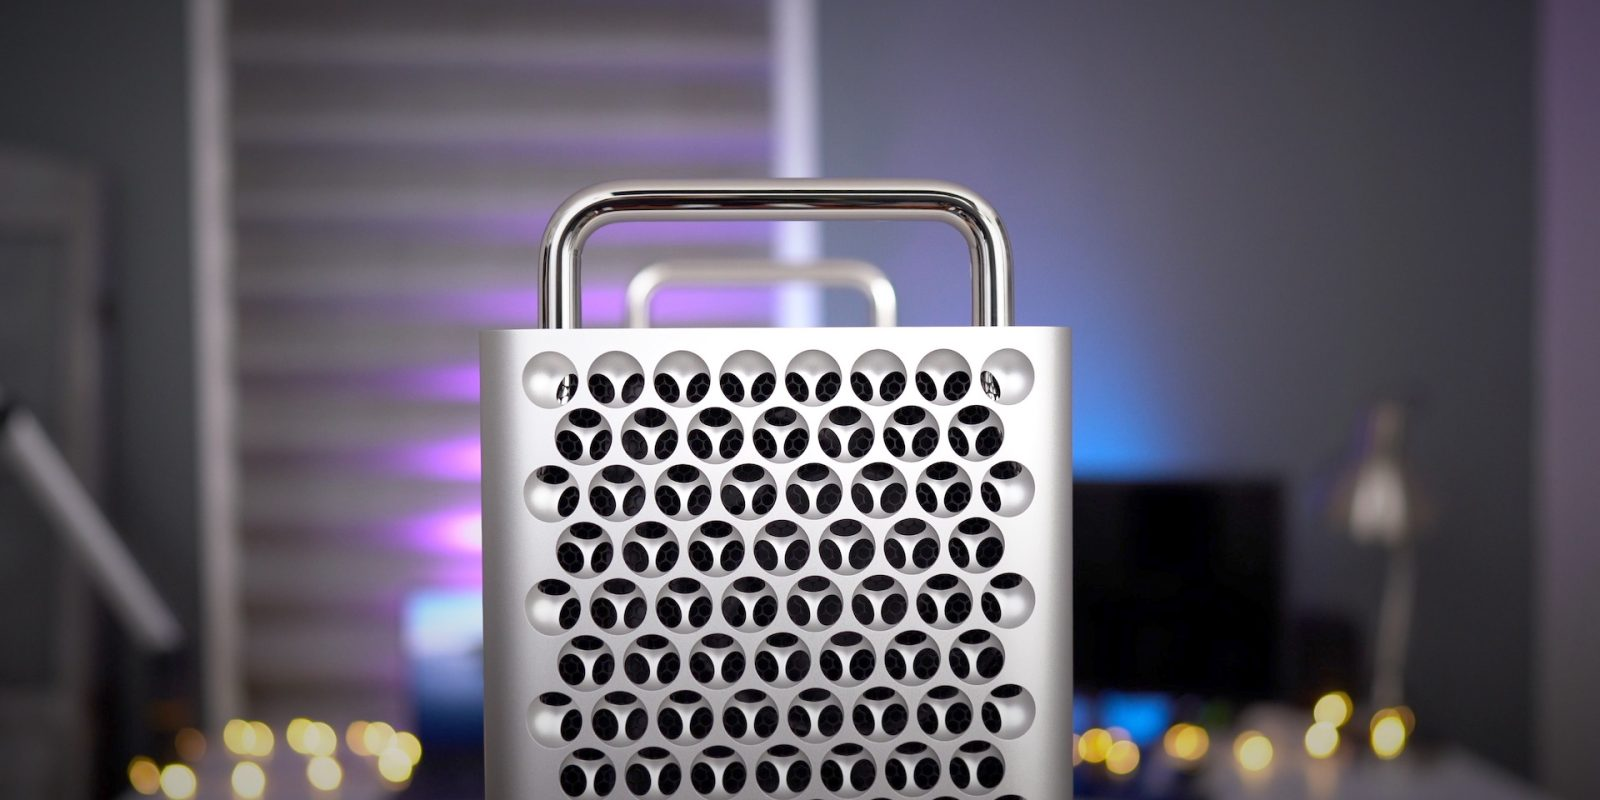 Here's what we know about Apple's plans for the Mac Pro and Pro Display XDR